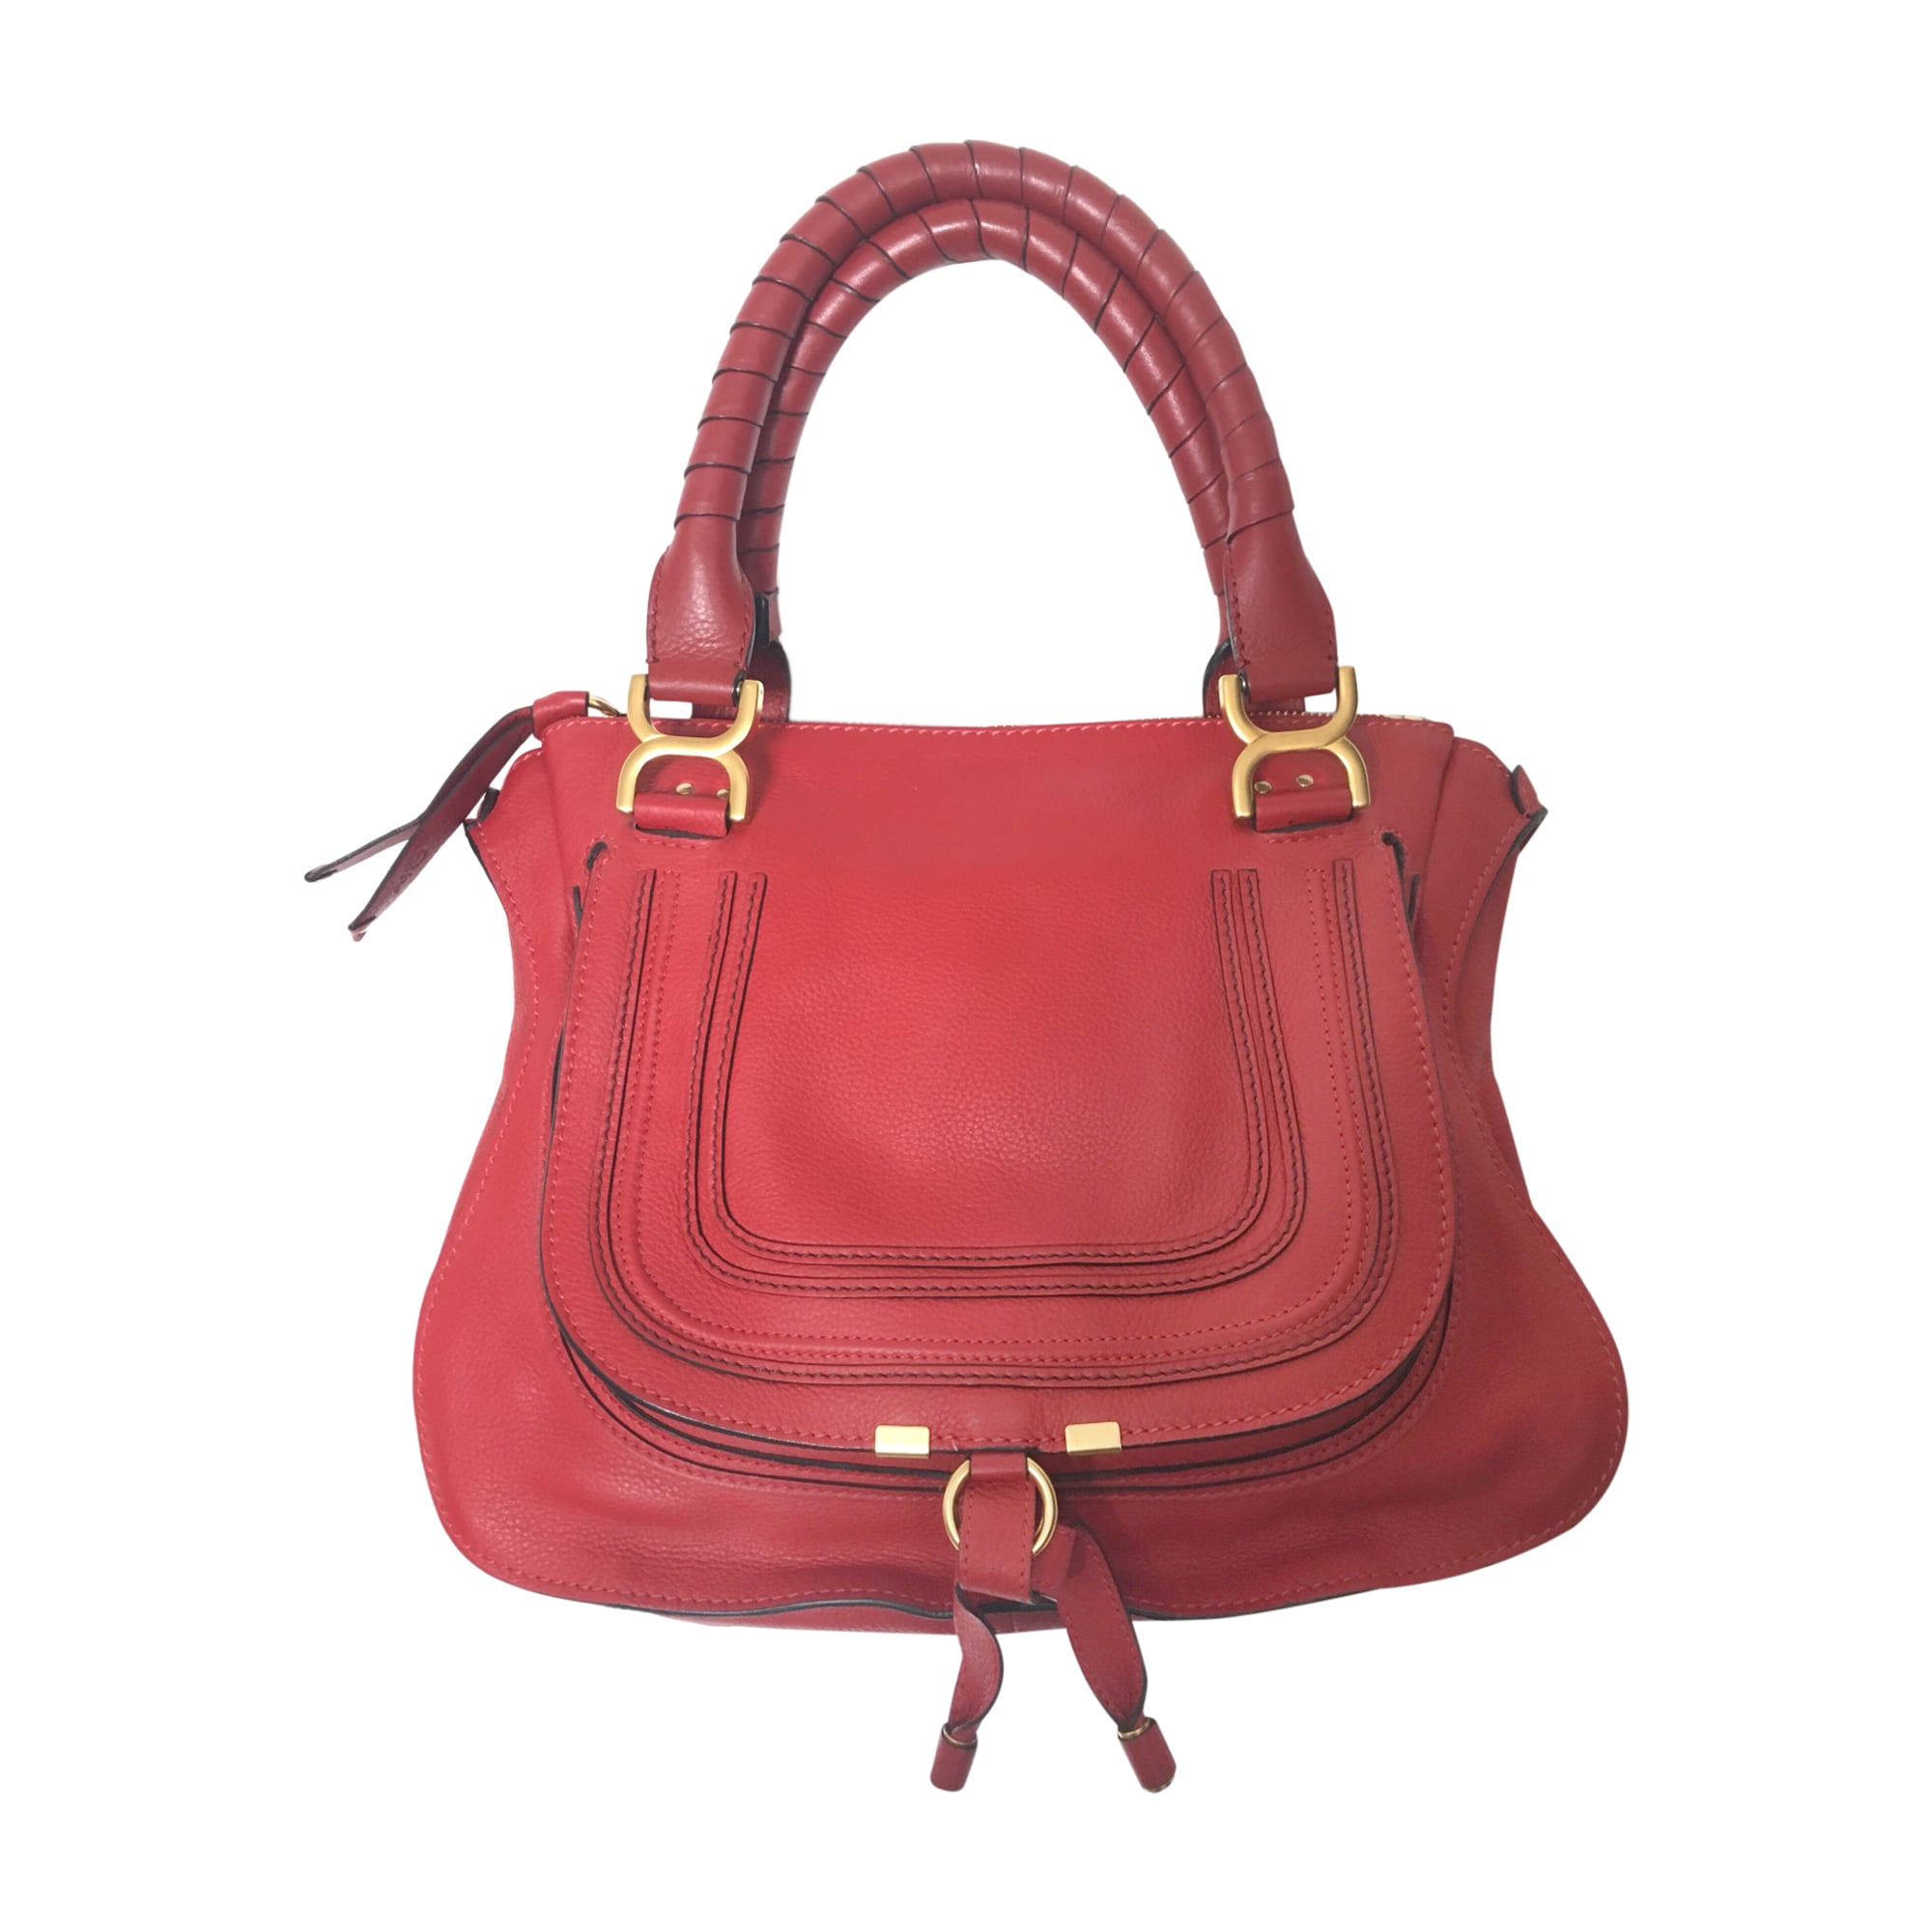 Leather Handbag CHLOÉ Red, burgundy